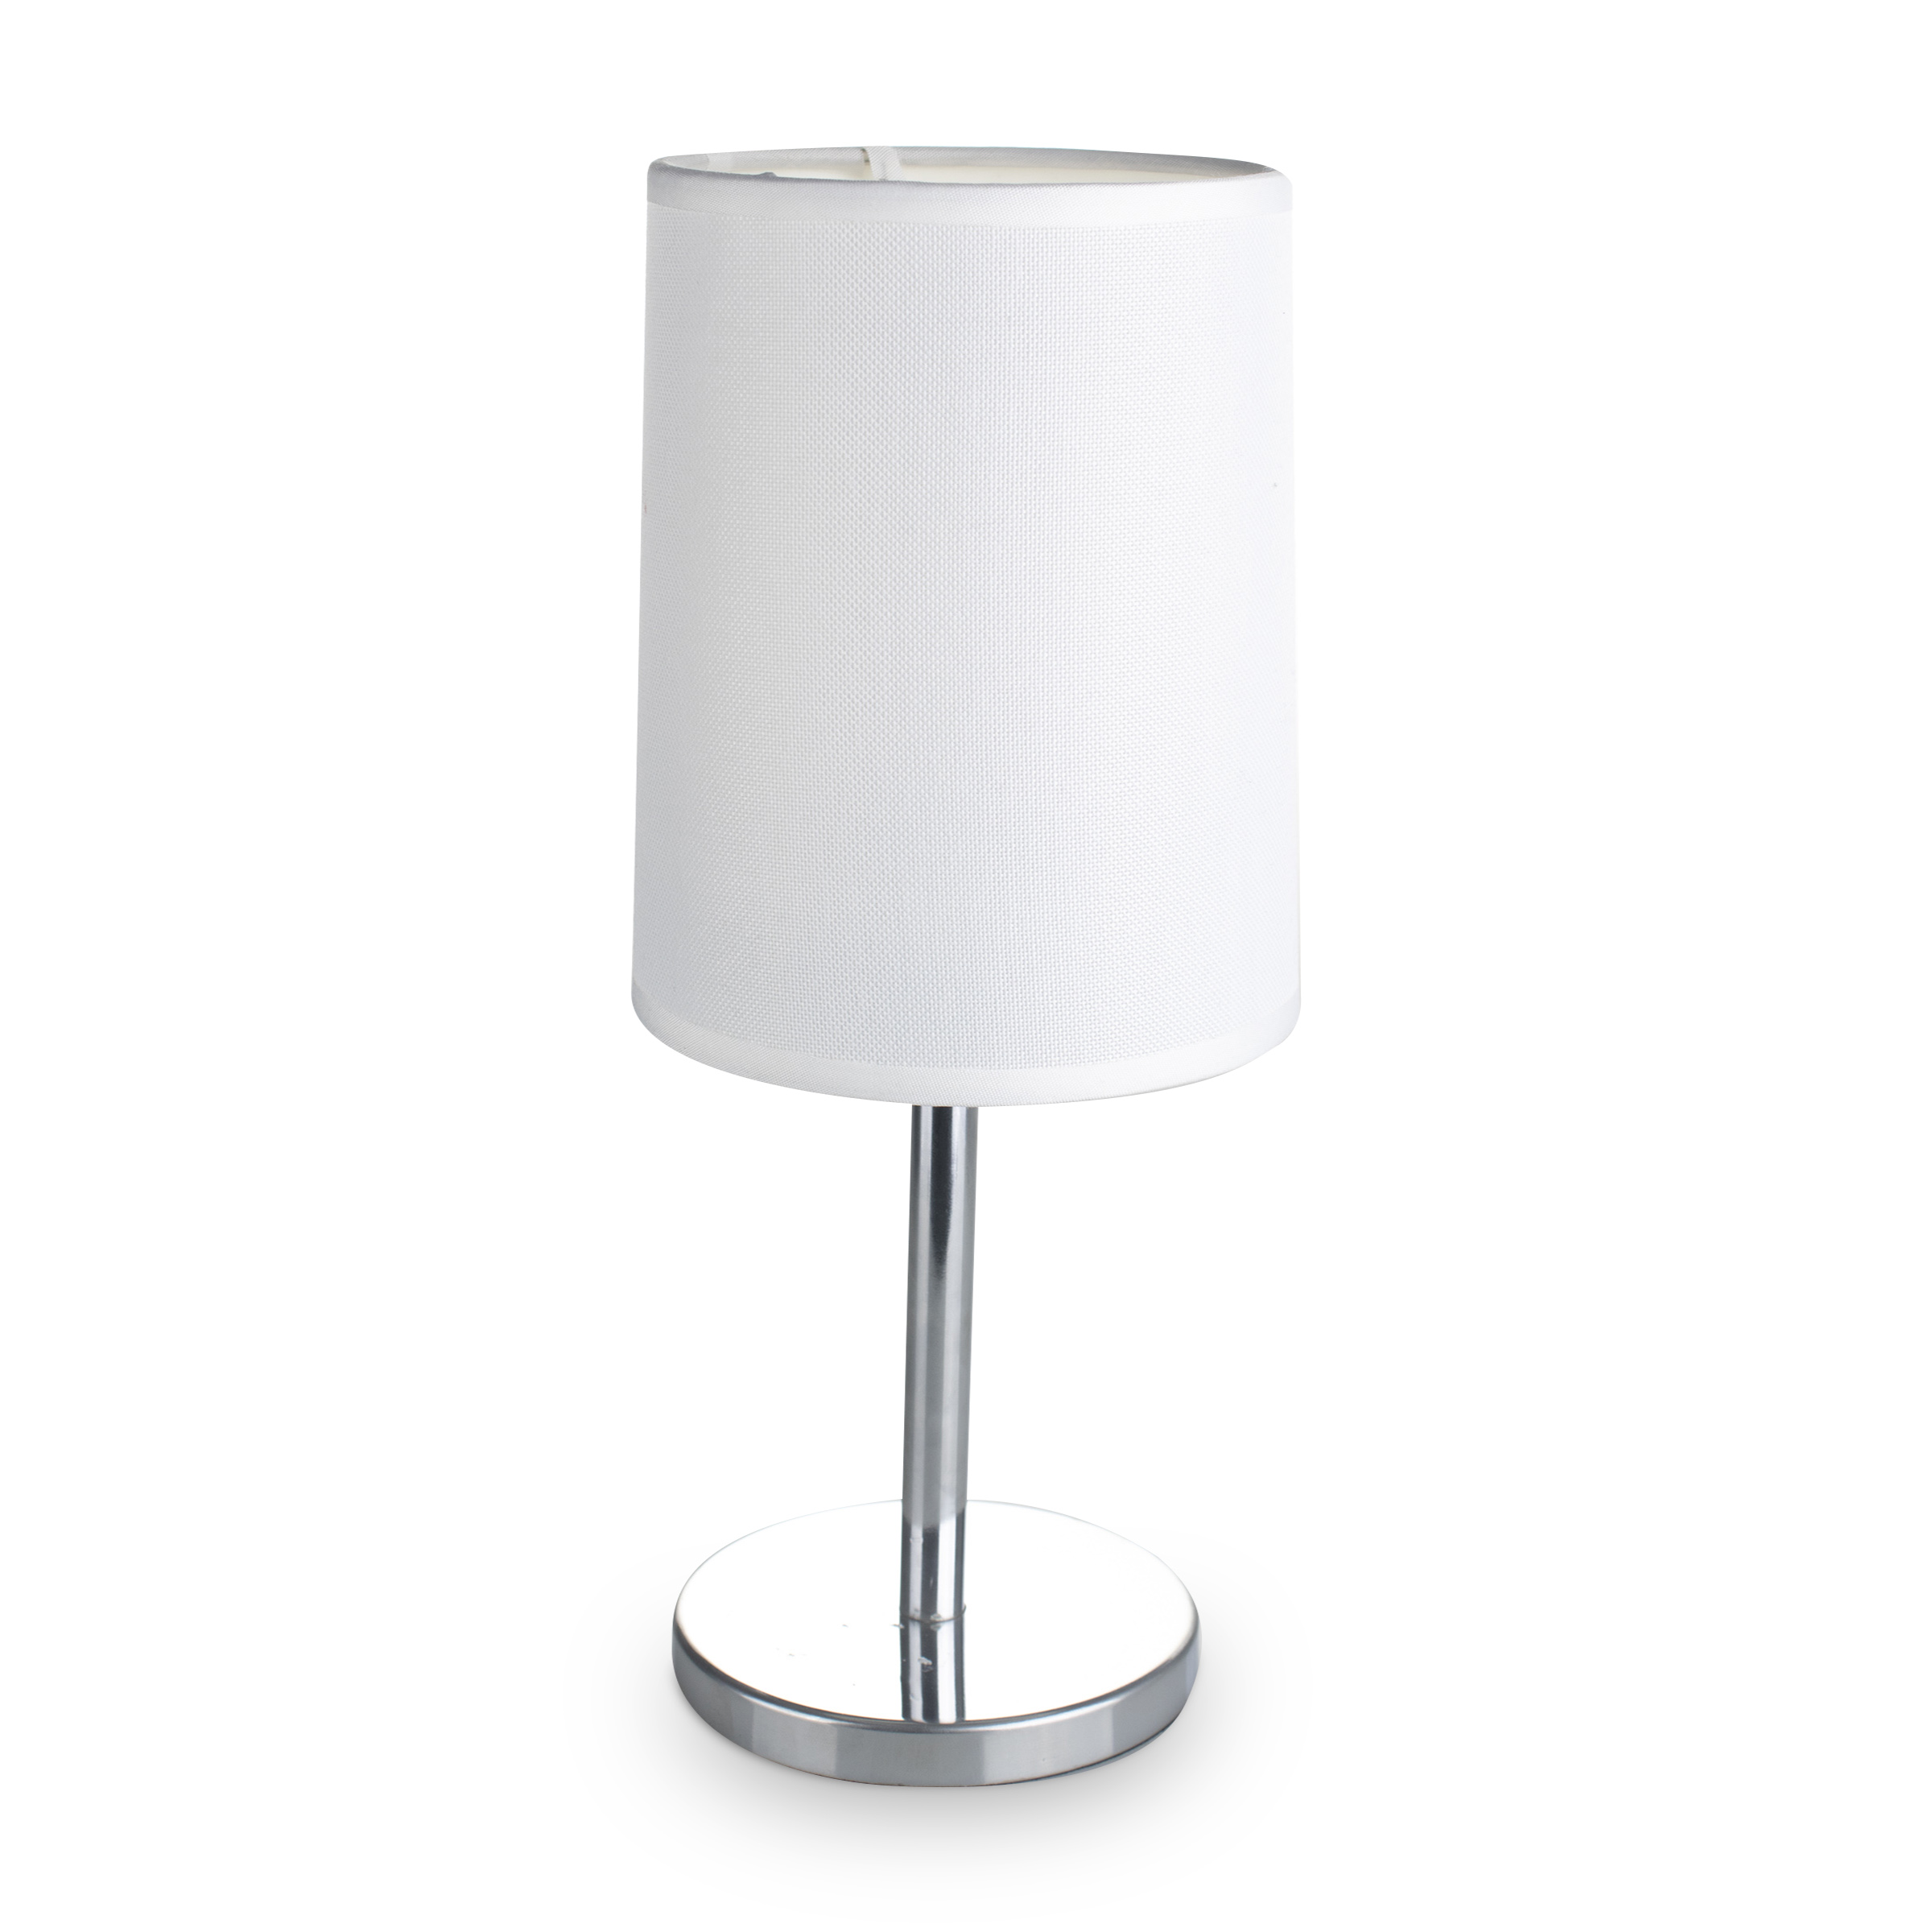 Sterno 80571 lamp